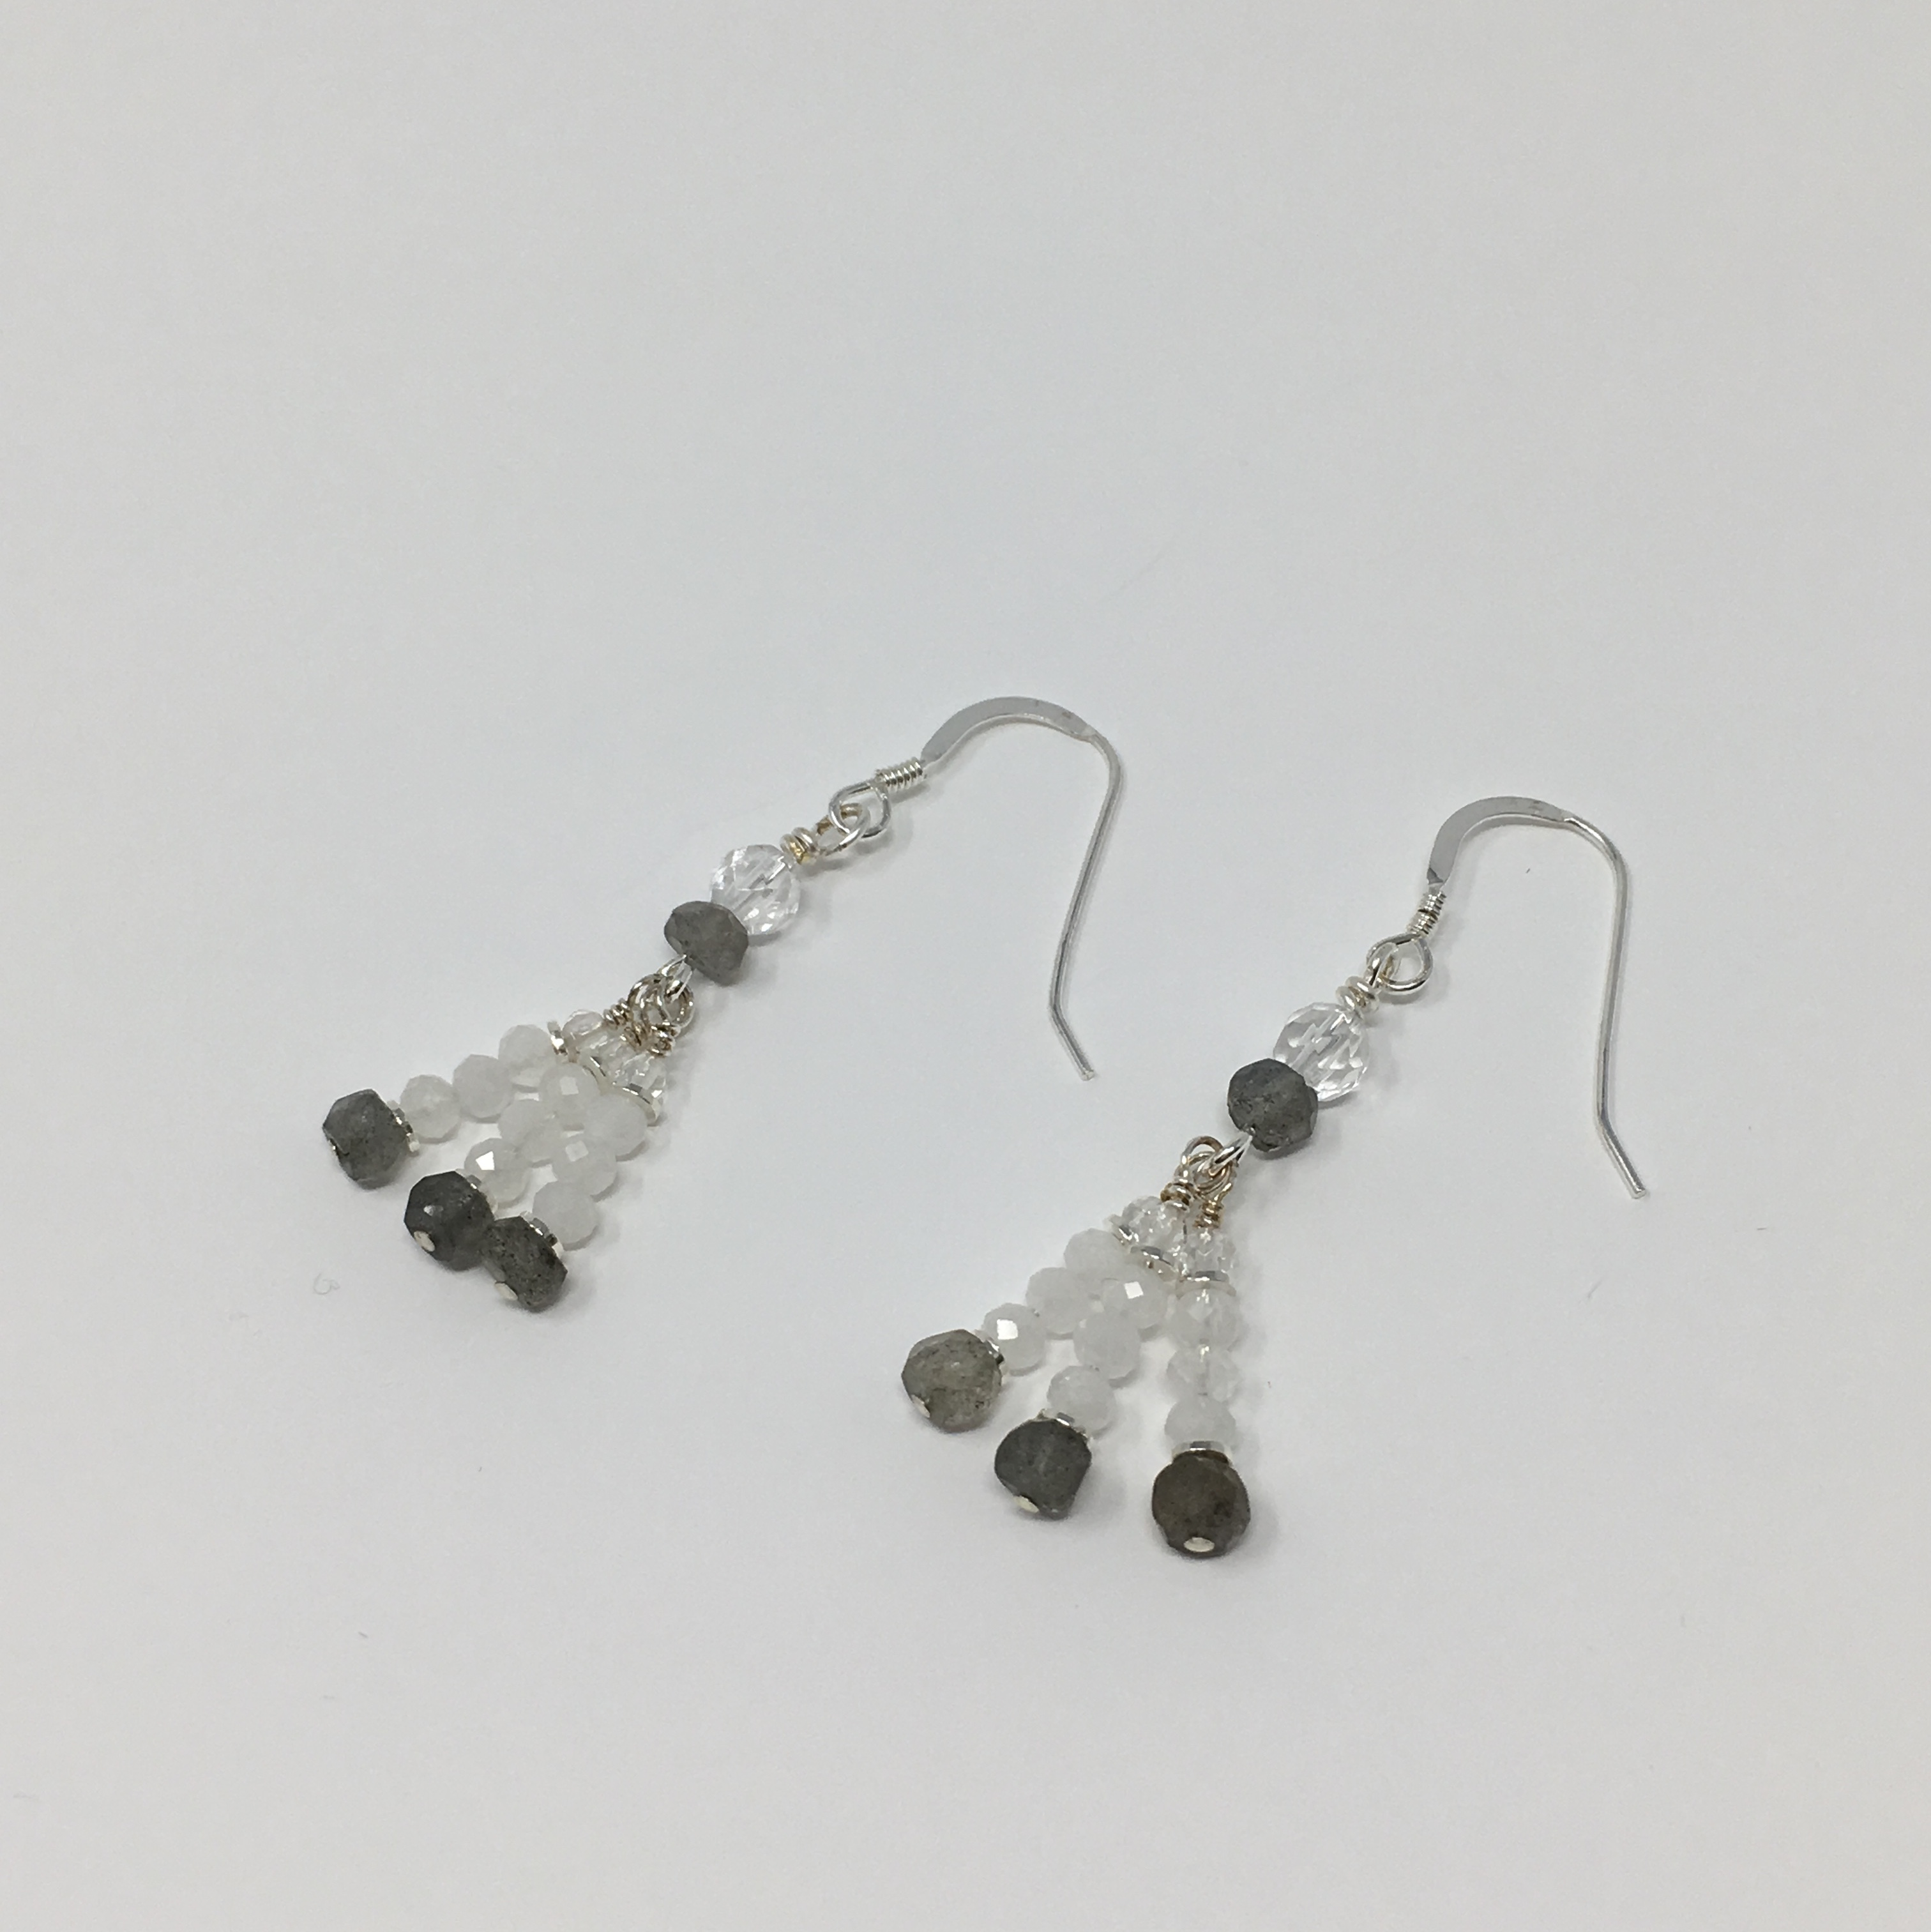 labradorite by jewellery gorgeous pinterest blgk earrings pin